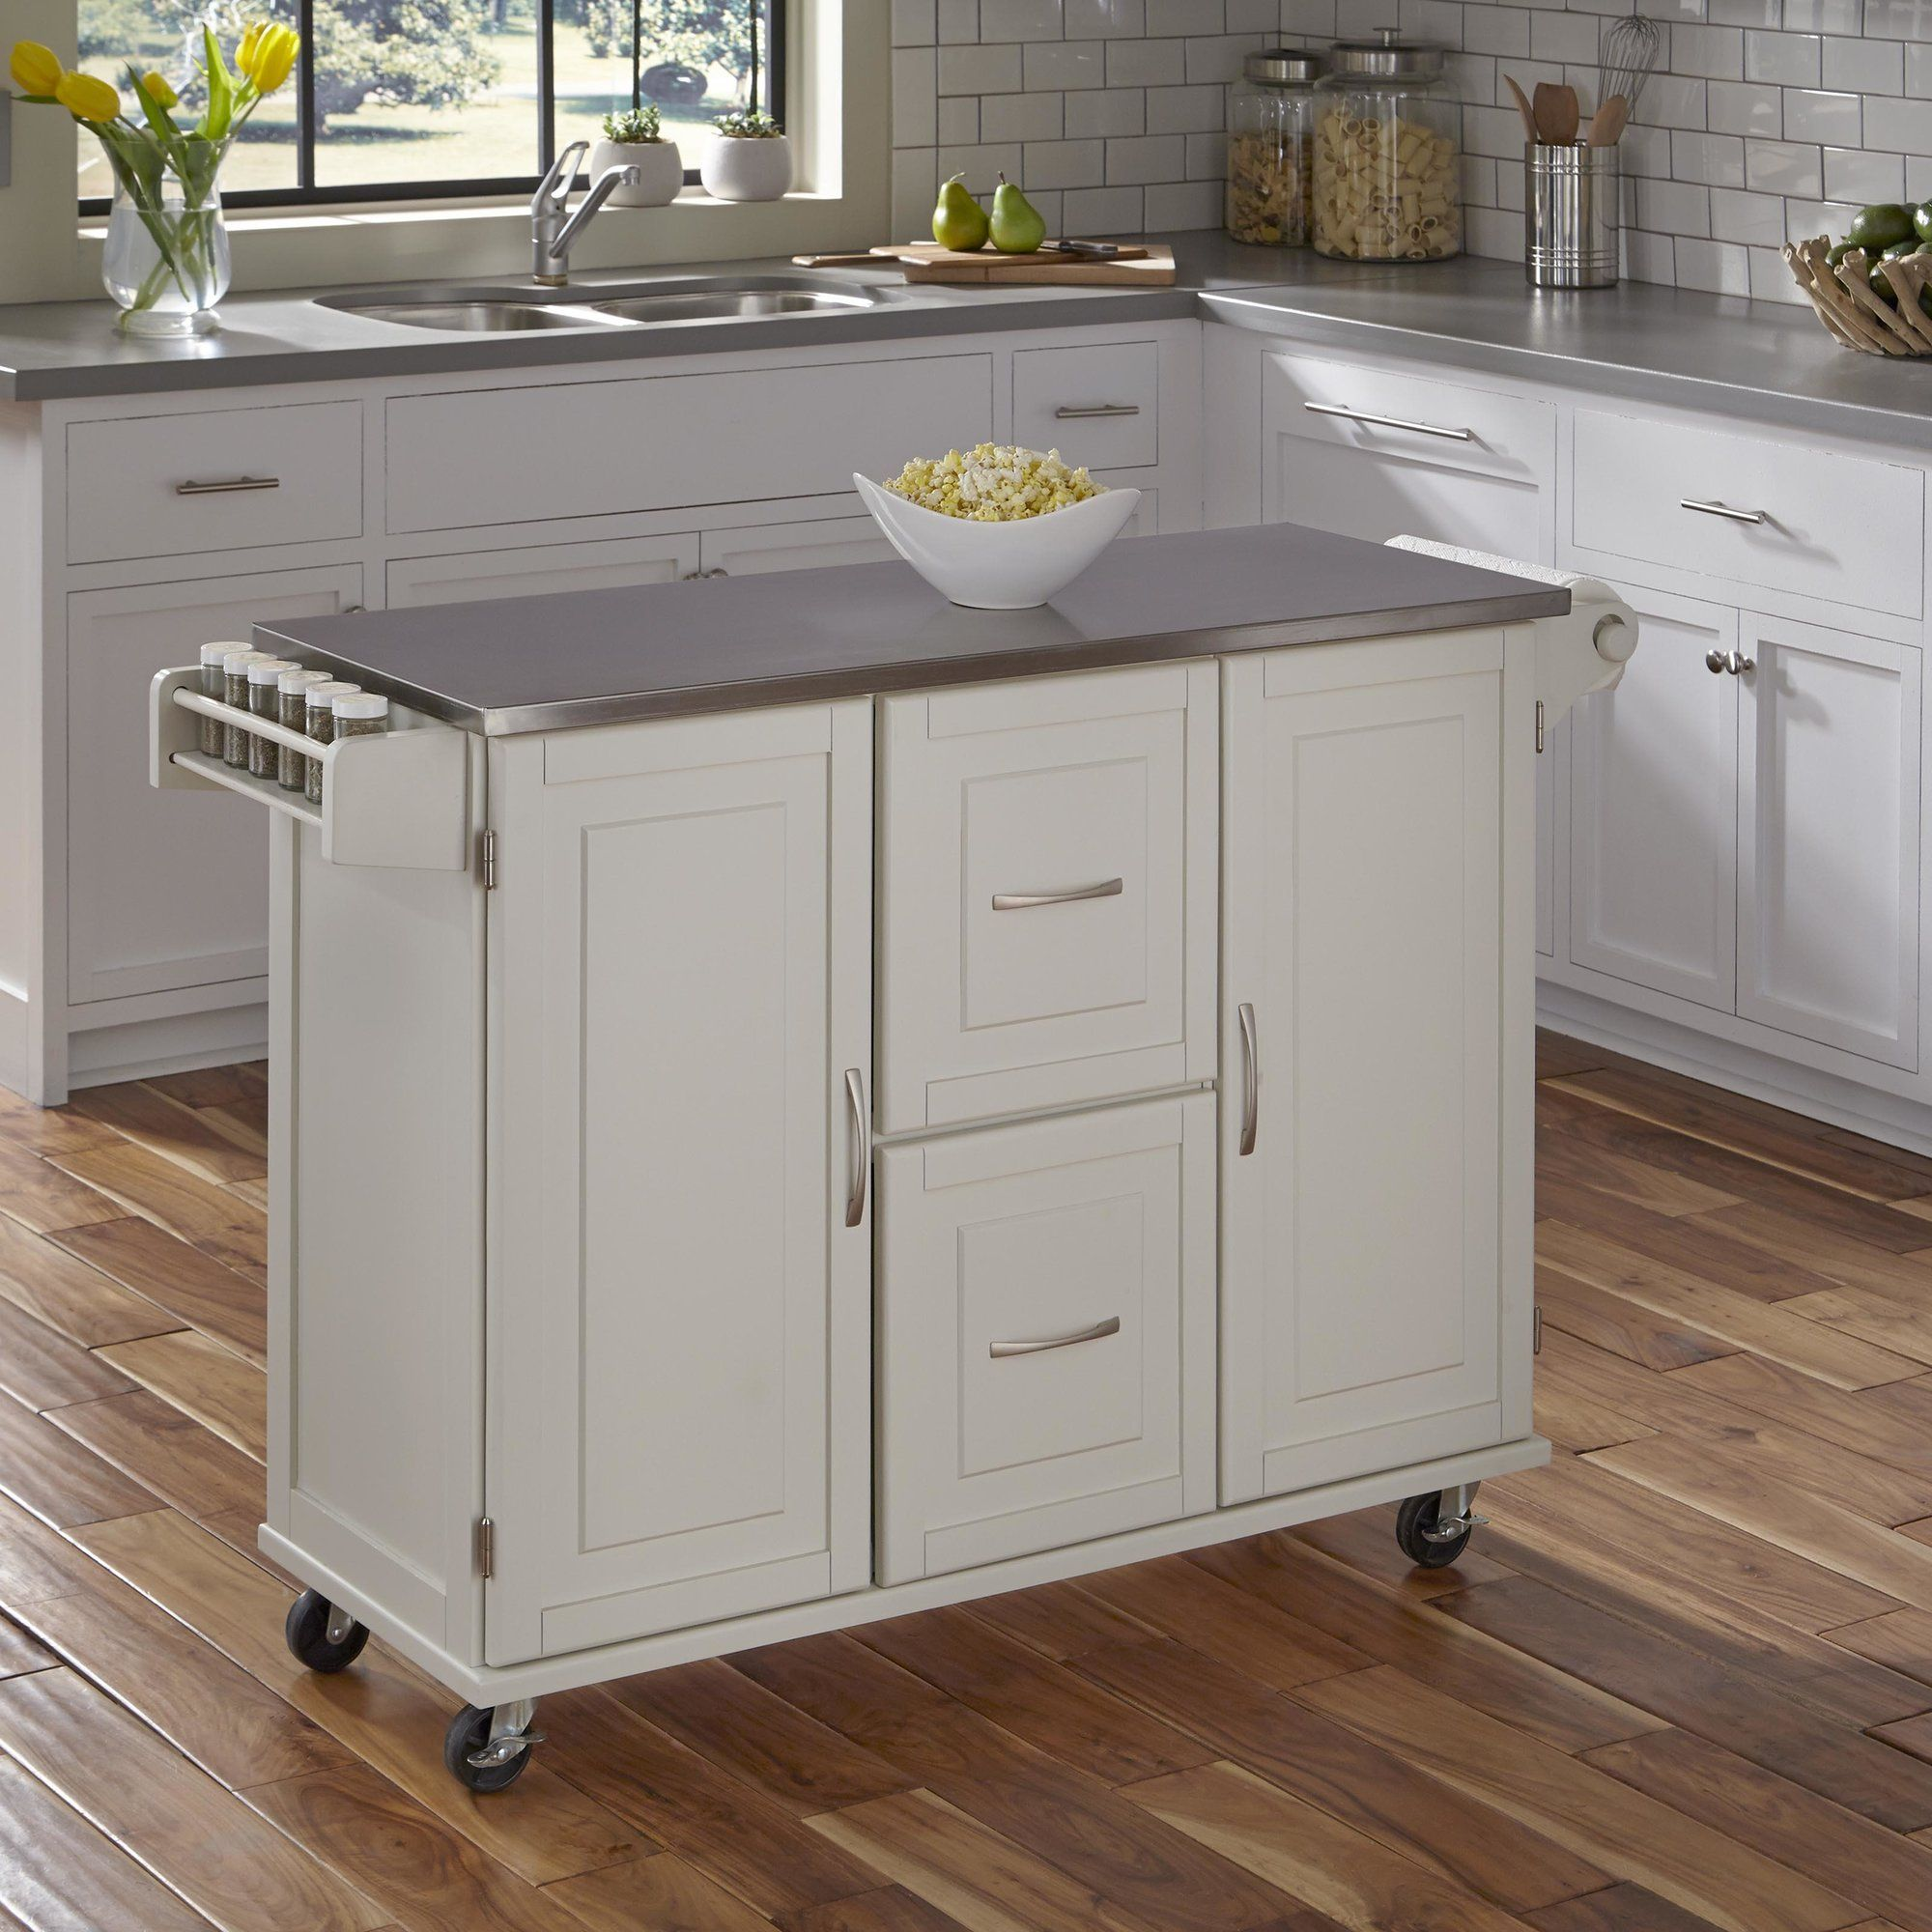 Lomas Kitchen Island With Stainless Steel White Kitchen Cart Off White Kitchens Kitchen Furniture